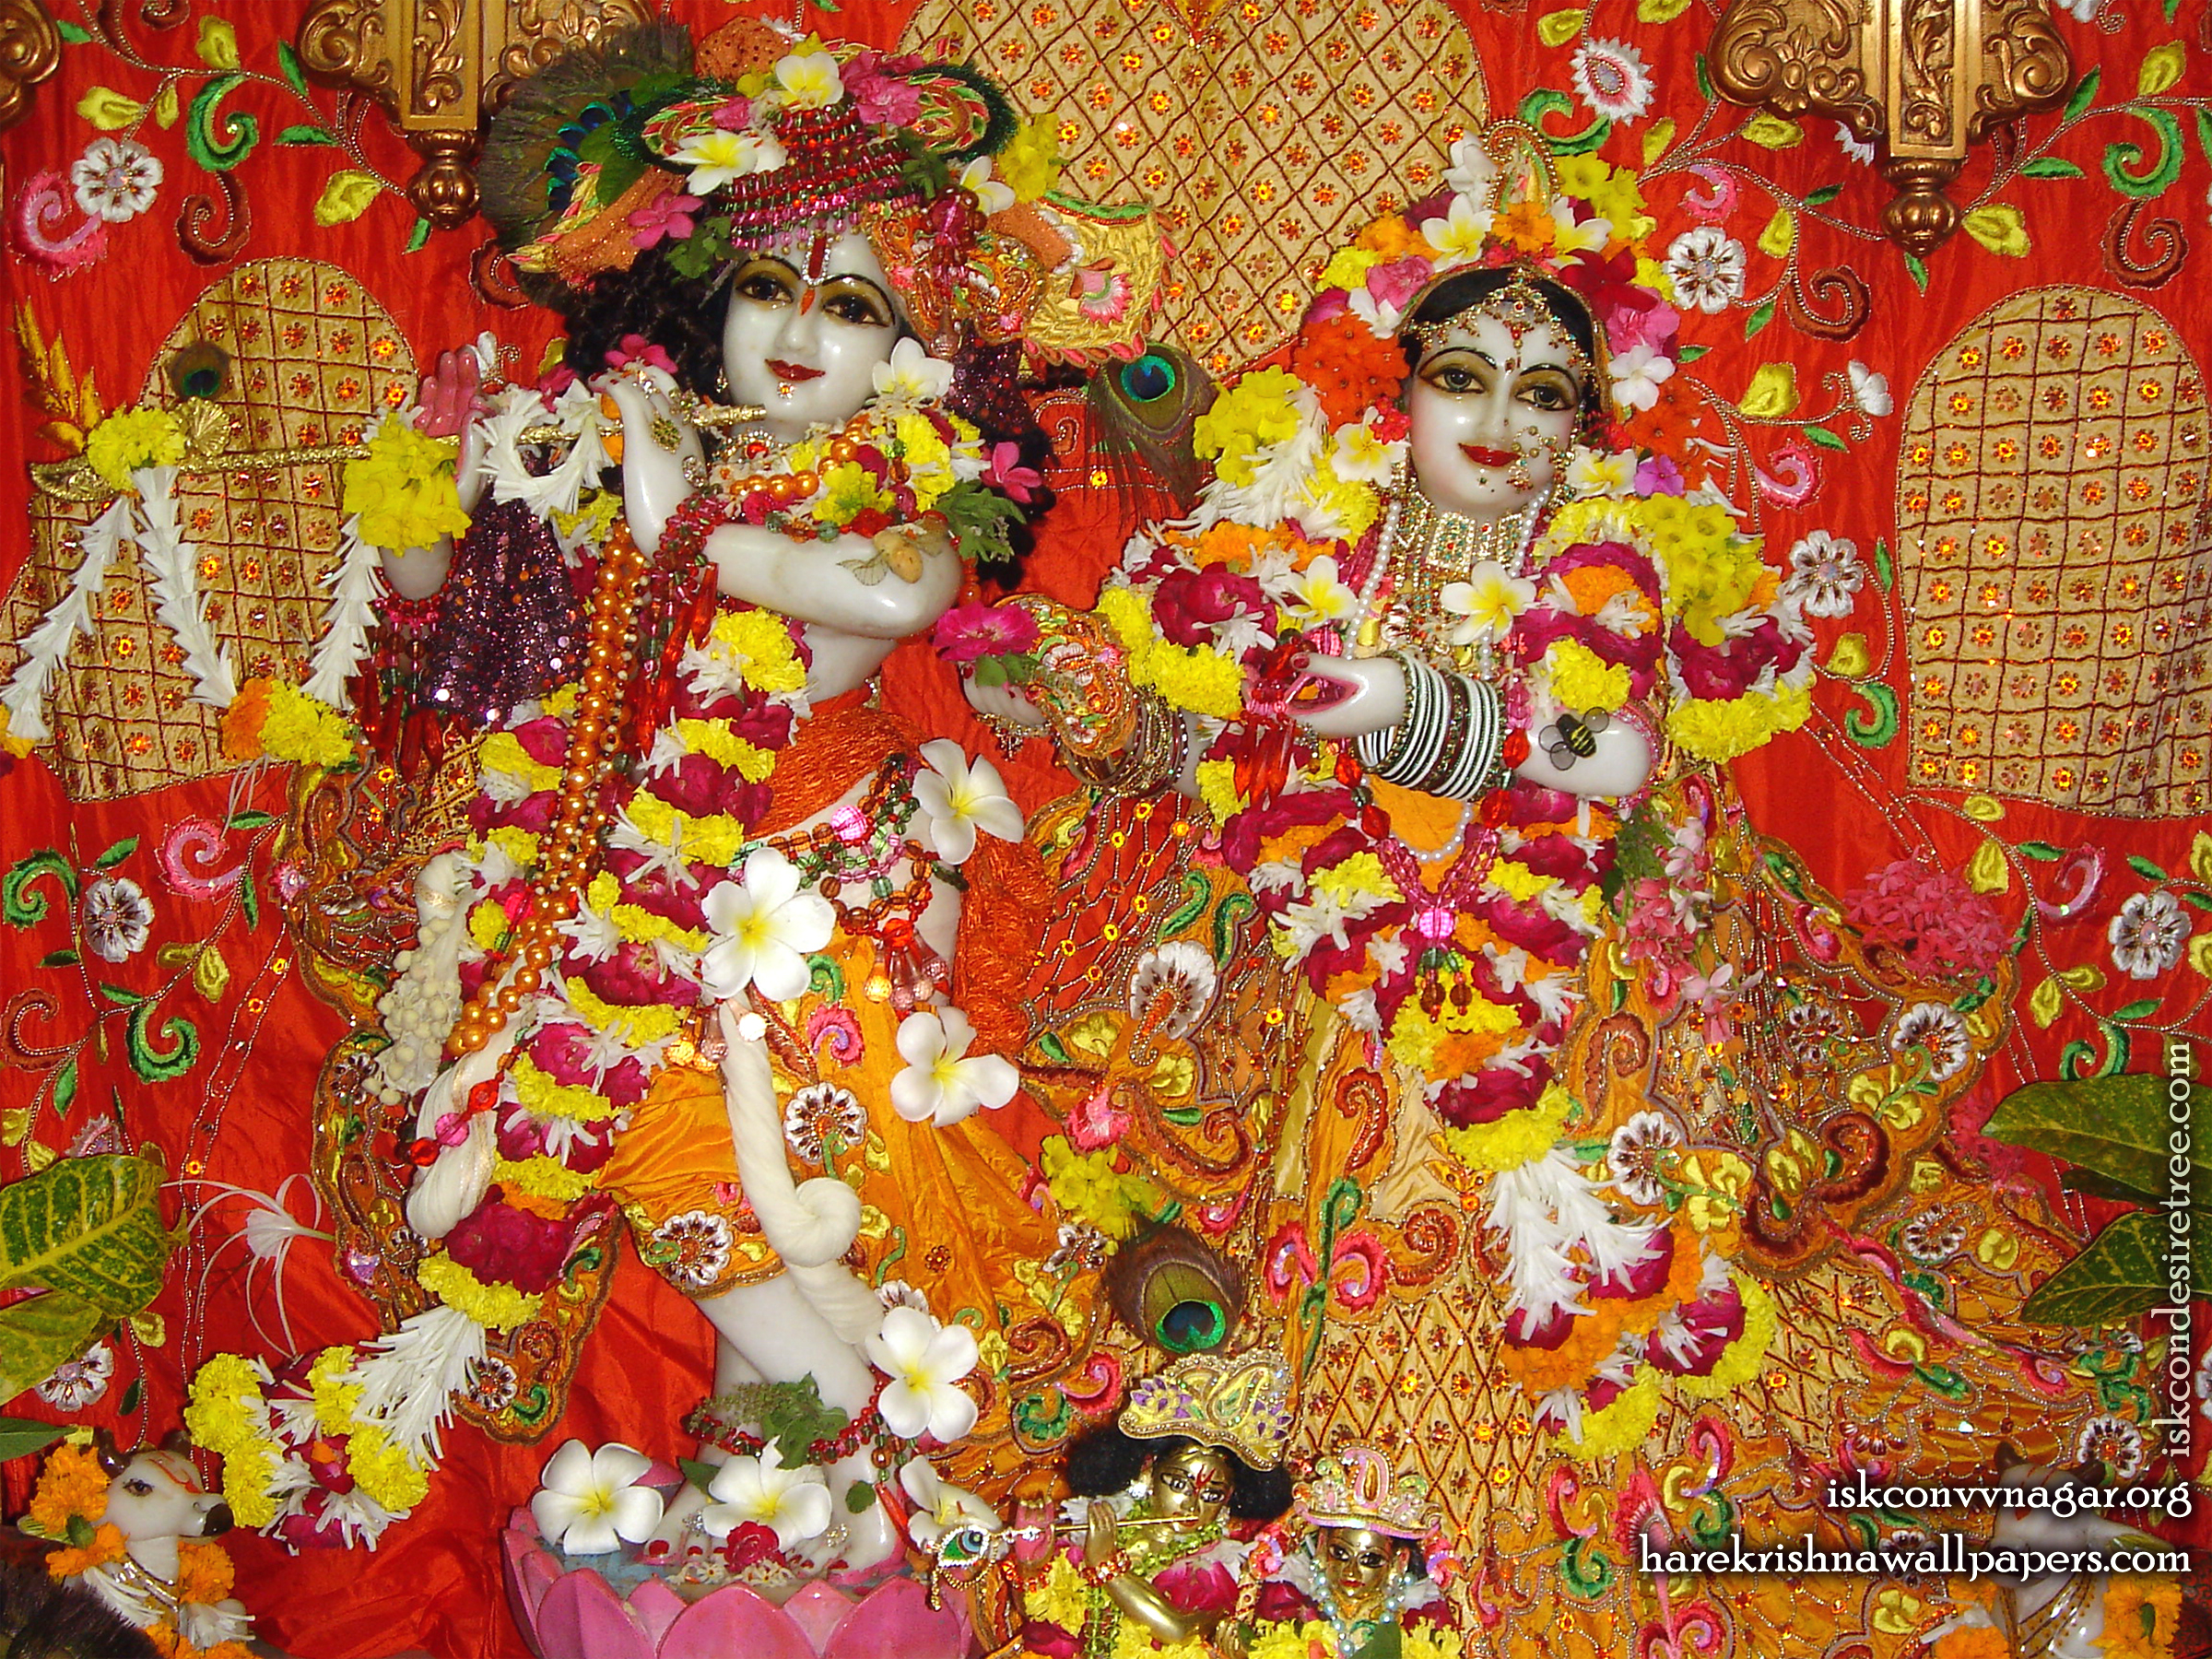 Sri Sri Radha Giridhari Wallpaper (028) Size 2400x1800 Download